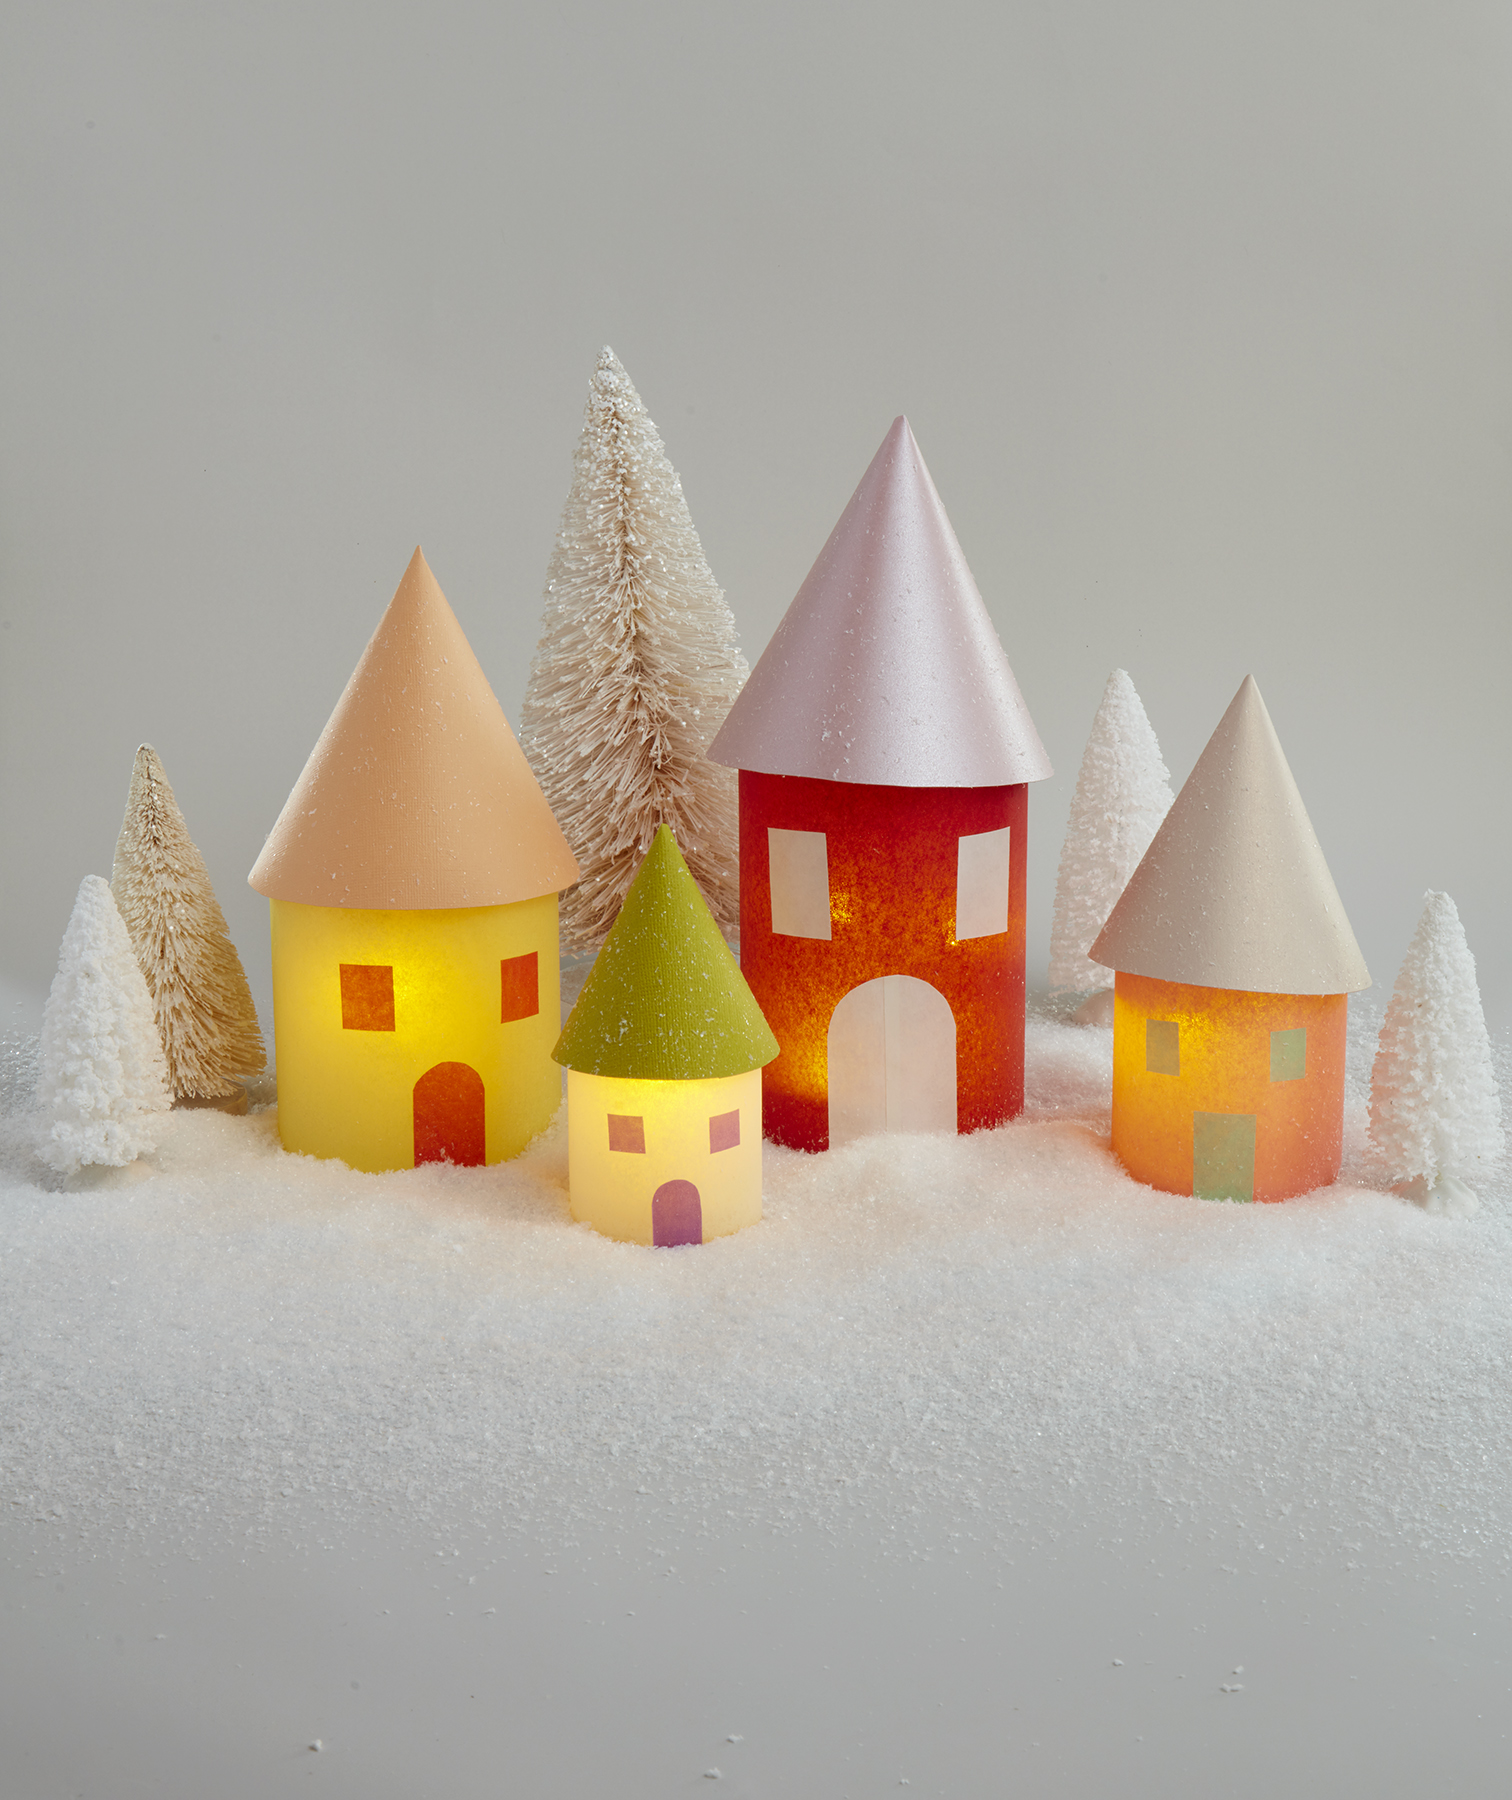 Christmas crafts ideas - Christmas Village